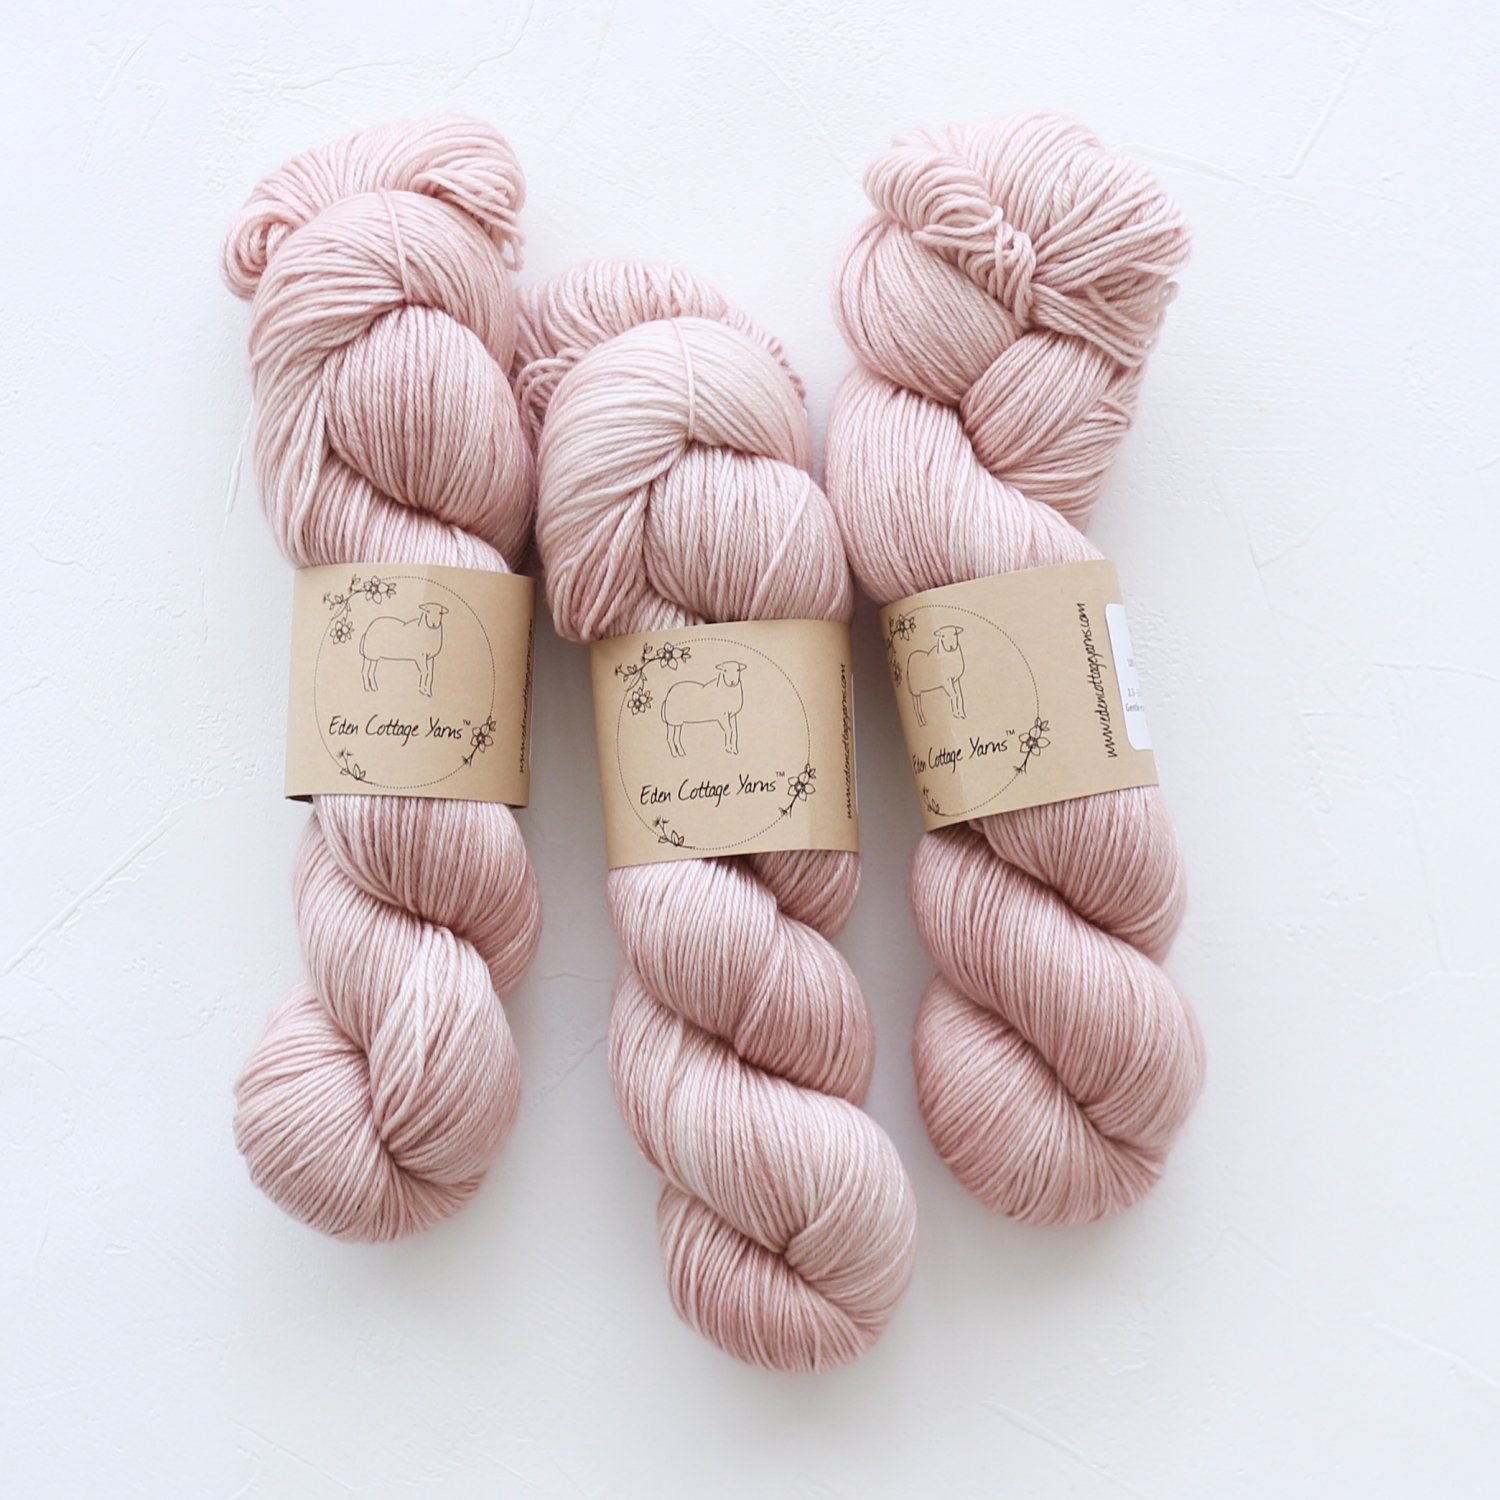 【Eden Cottage Yarns】<br>Pendle 4ply<br>Rambling Rose